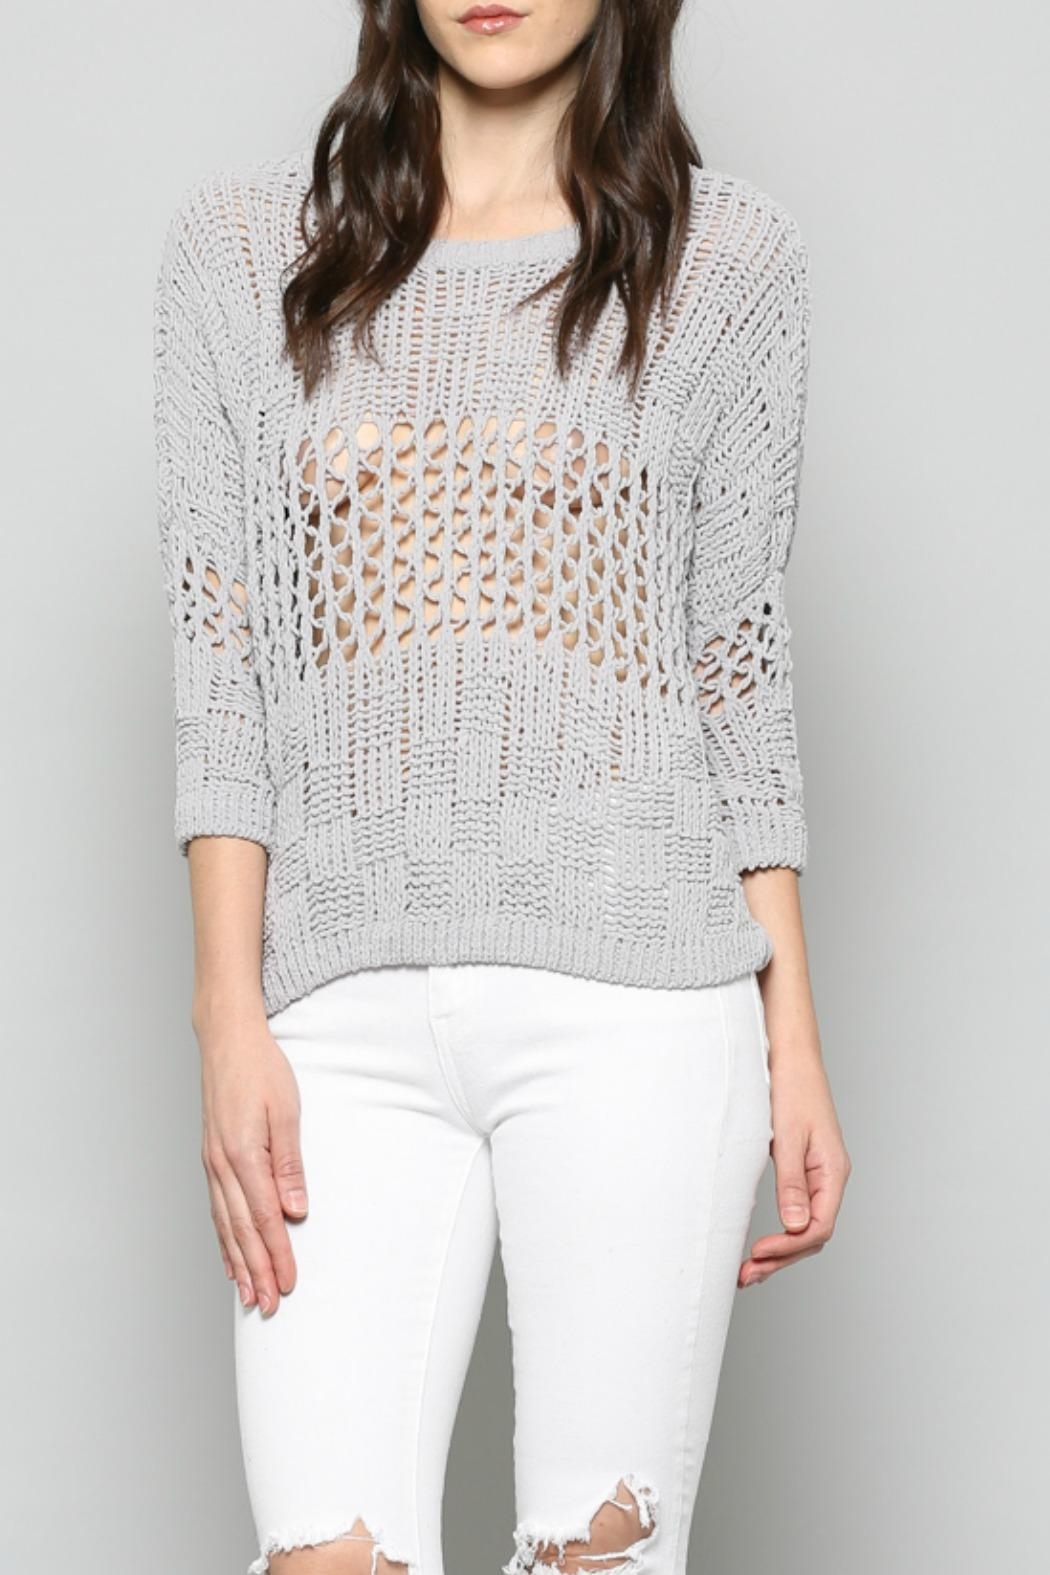 FATE by LFD Chenille Cropped Sweater - Front Full Image